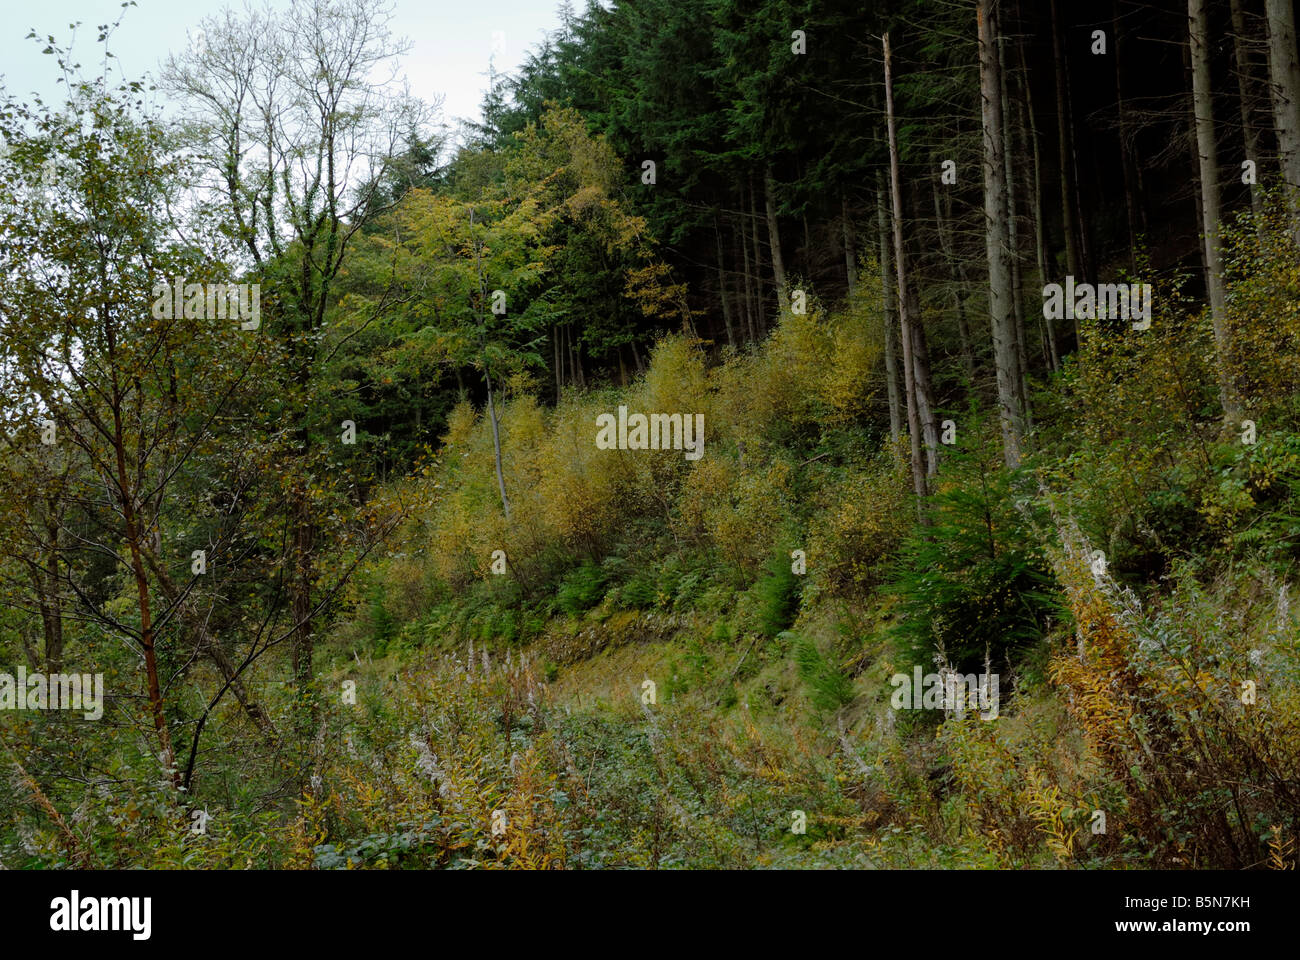 Natural regeneration of Birch woodland on an Ancient Woodland Site previously planted with conifers - Stock Image